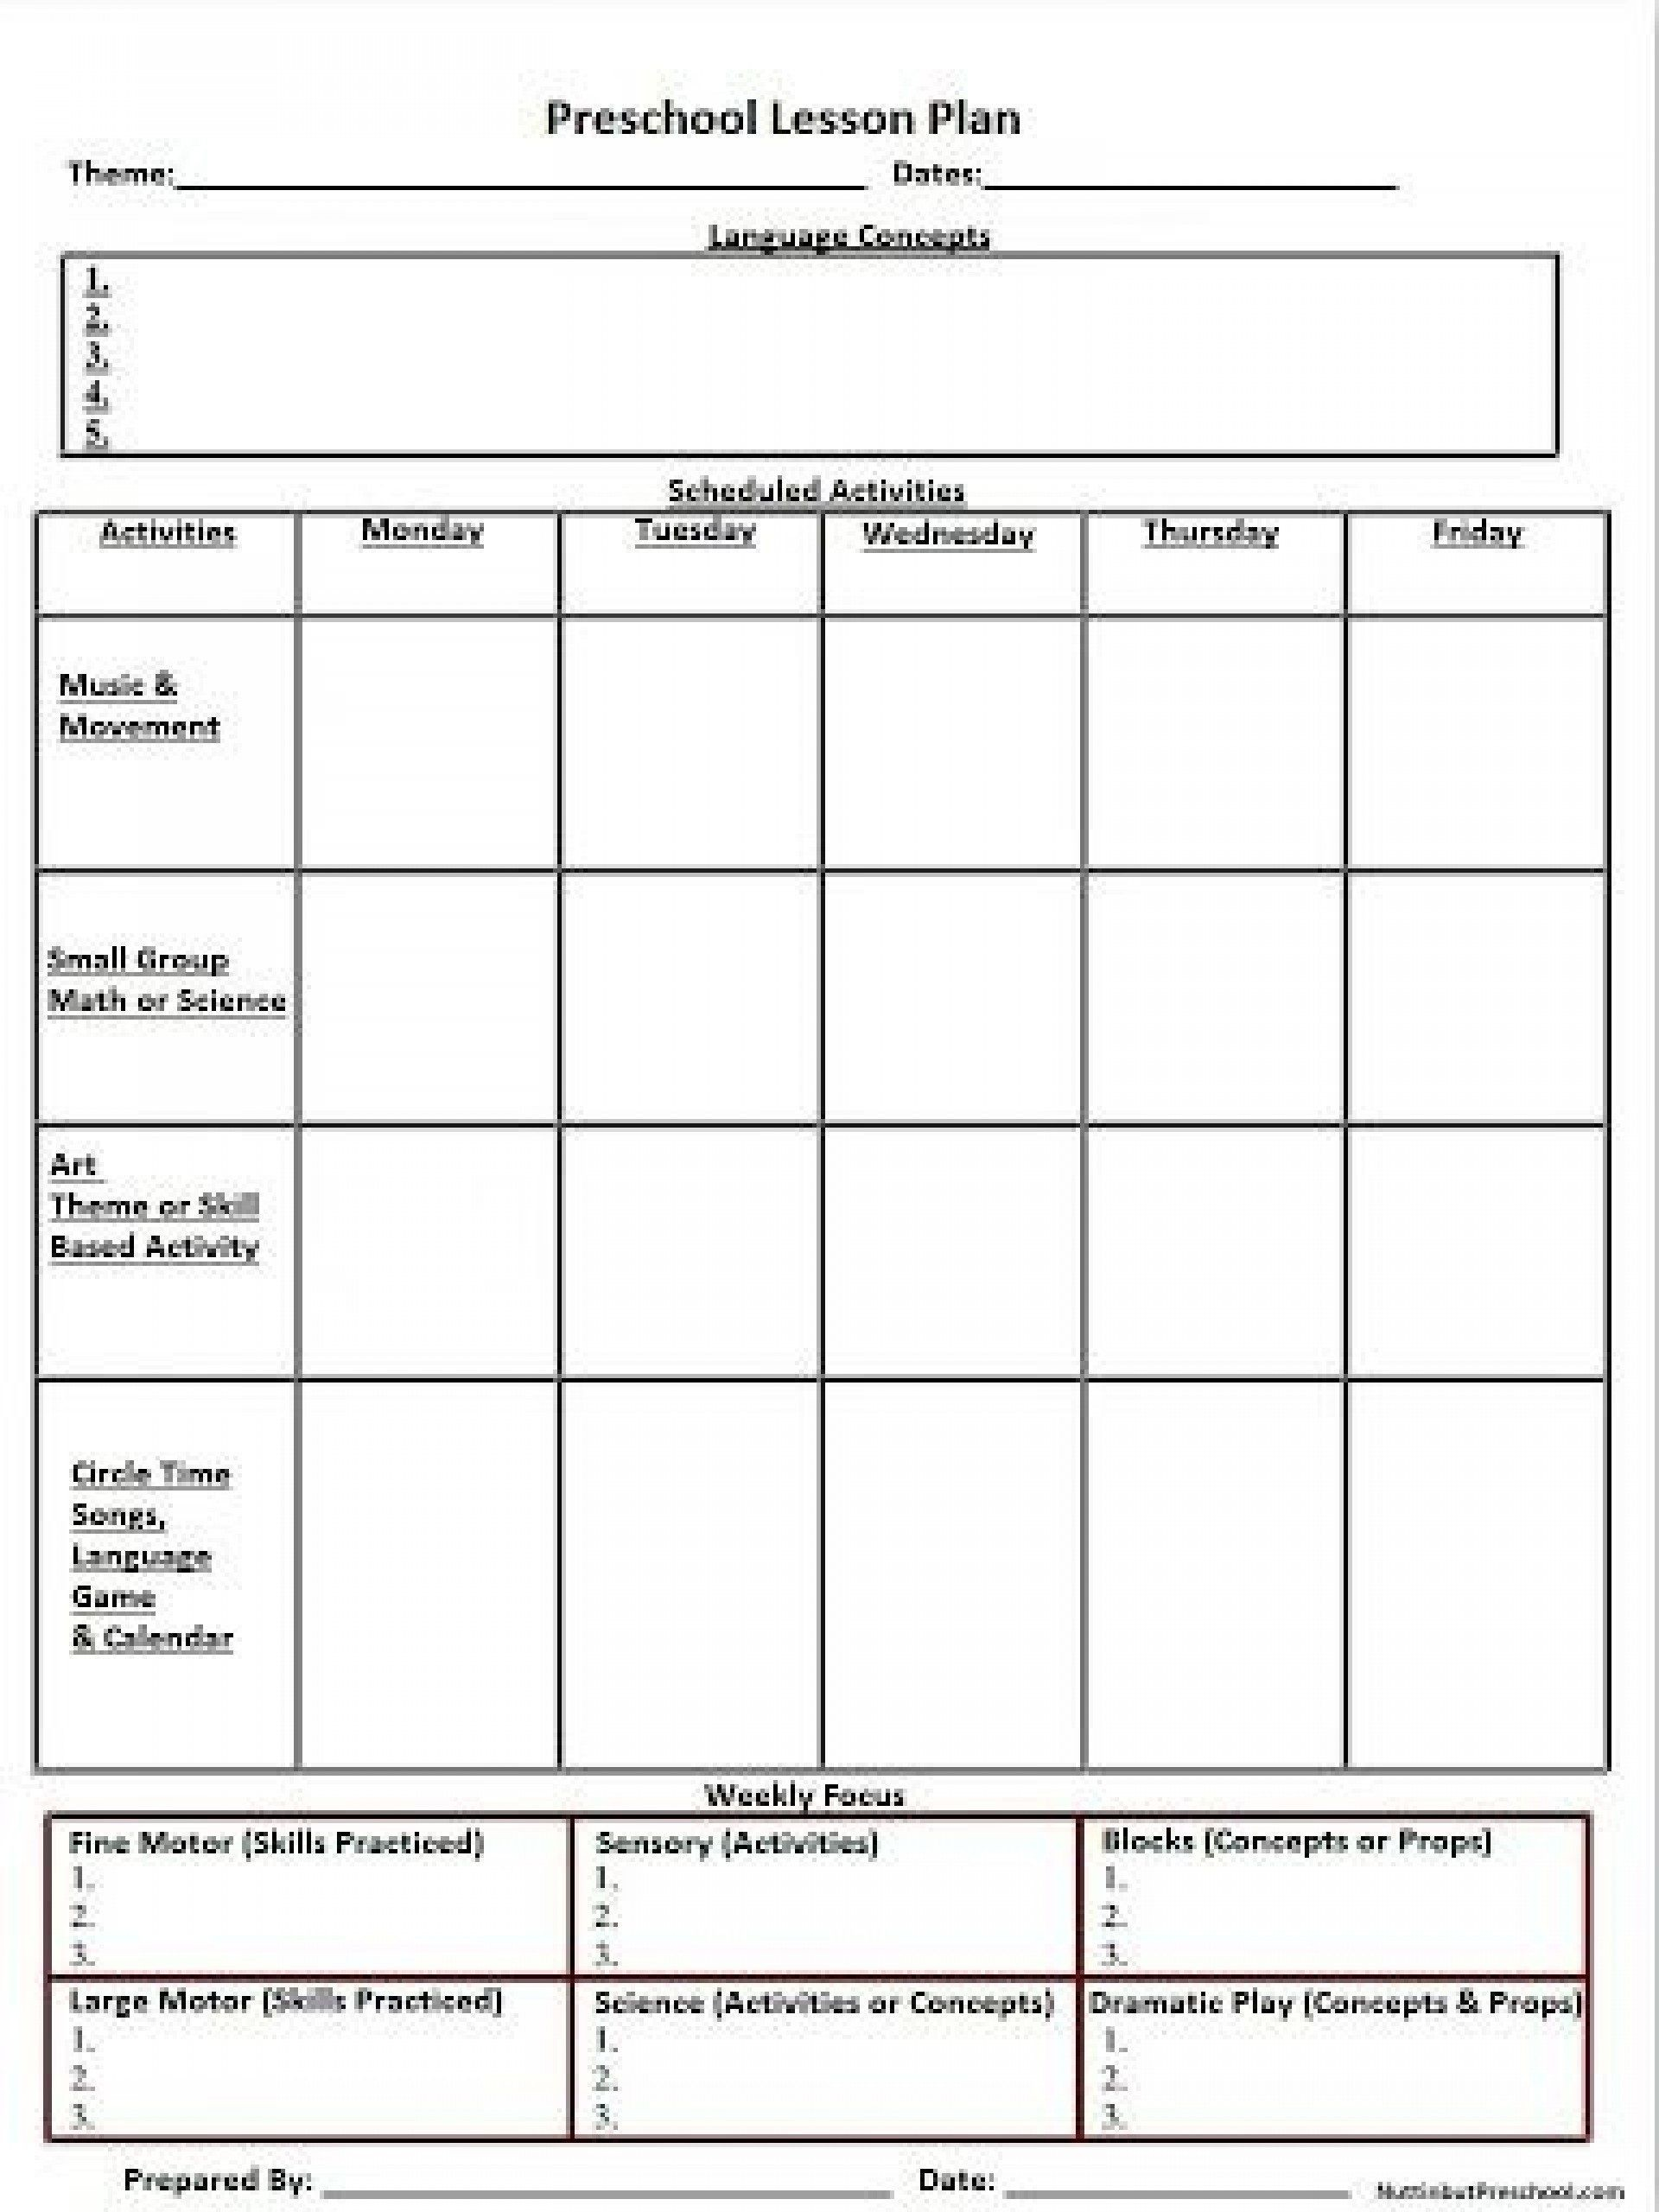 007 Shocking Weekly Lesson Plan Template High School Def  Free For Math Example History1920